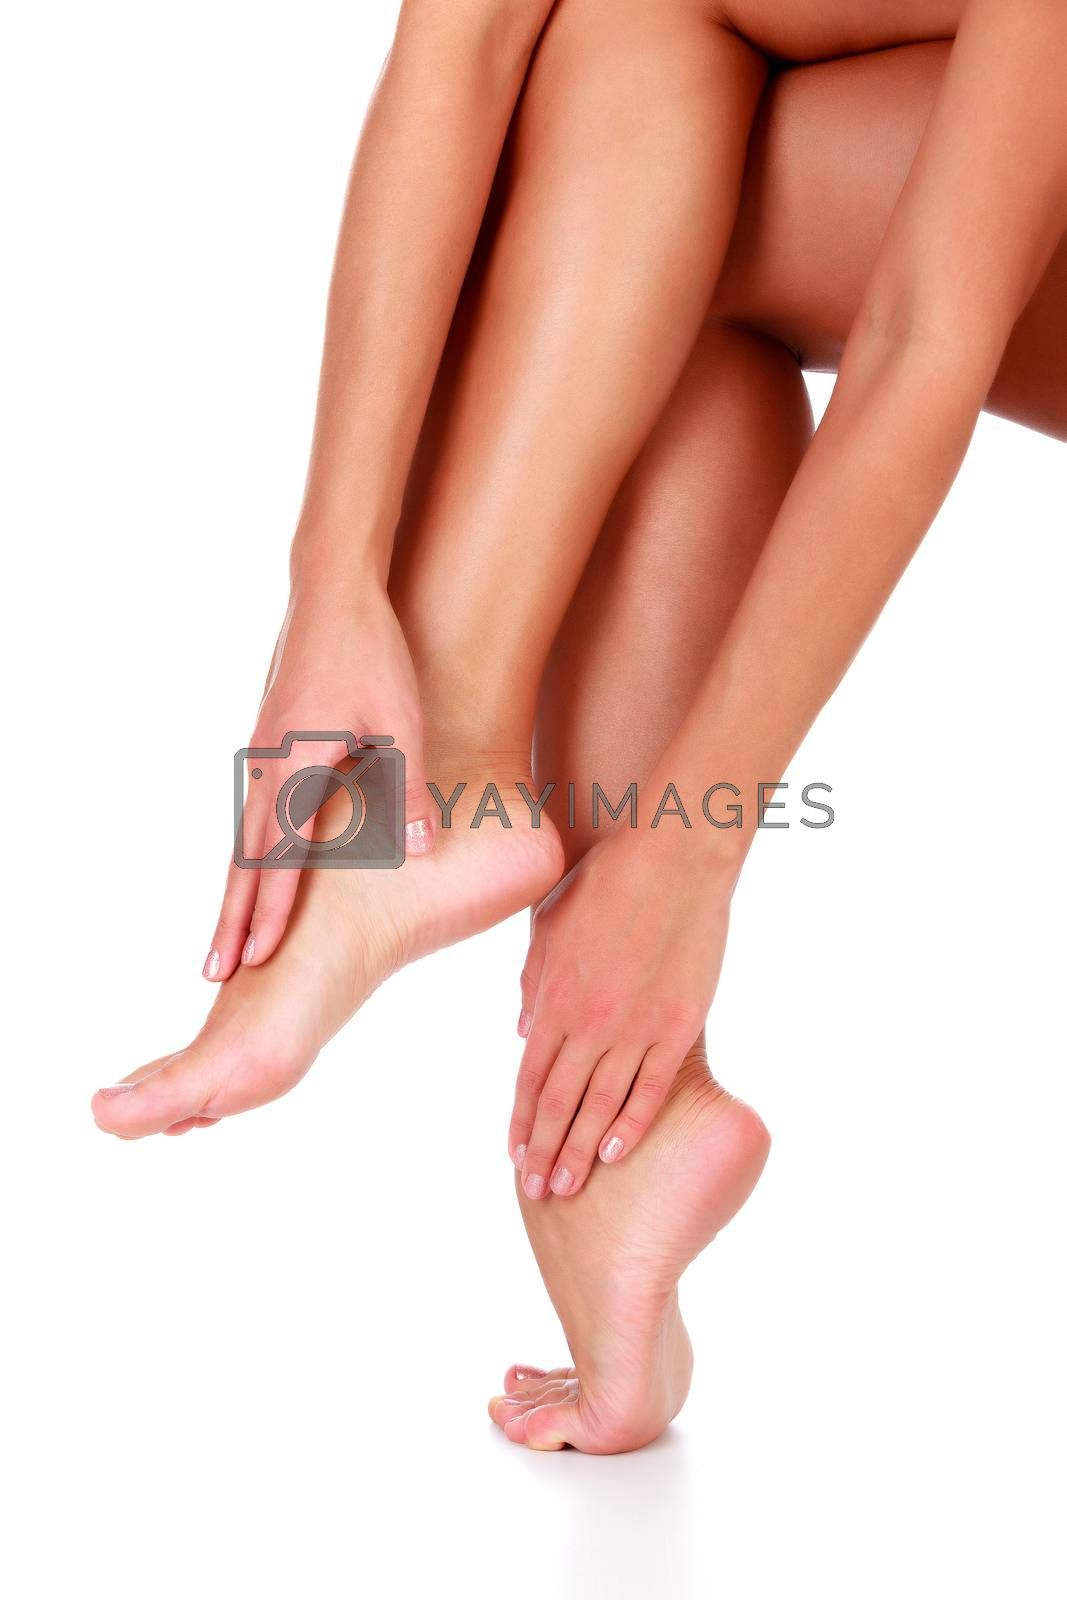 Closeup shot of healthy legs of beautiful woman, isolated on white background